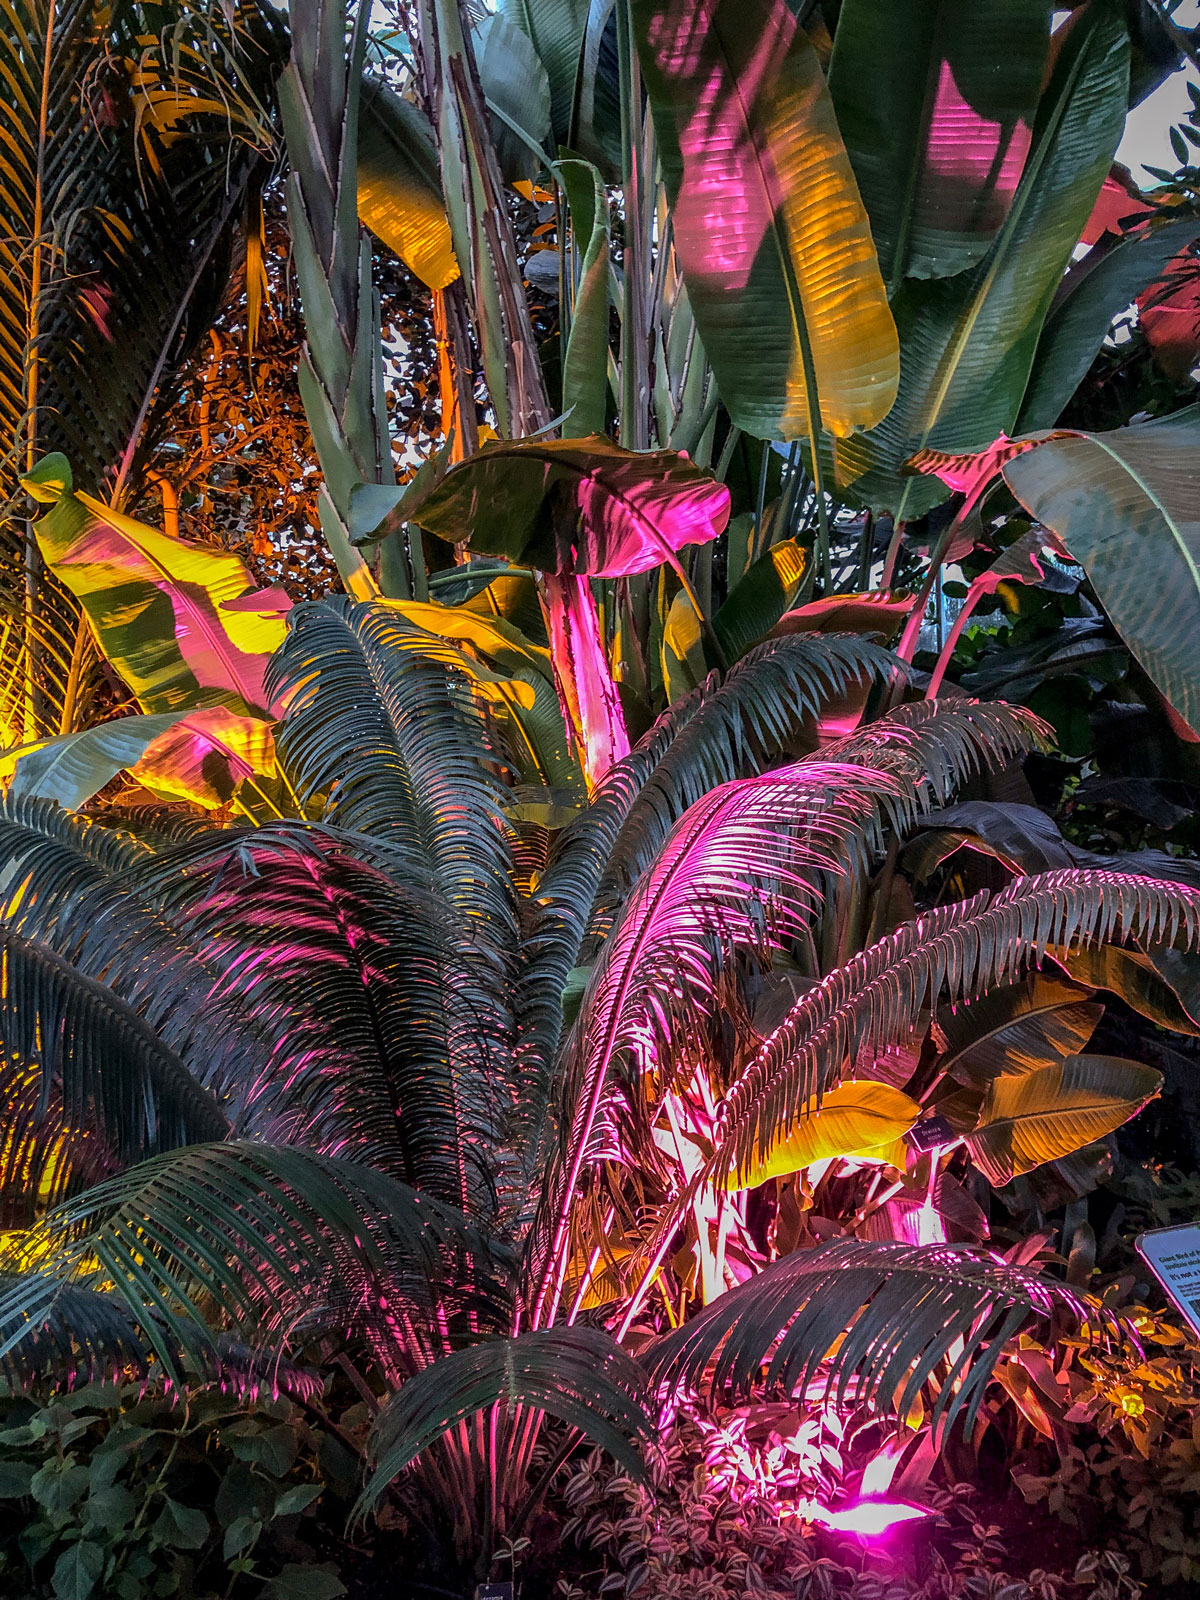 RHS Wisley Glow 2018 uplit pink palm trees in the glasshouse